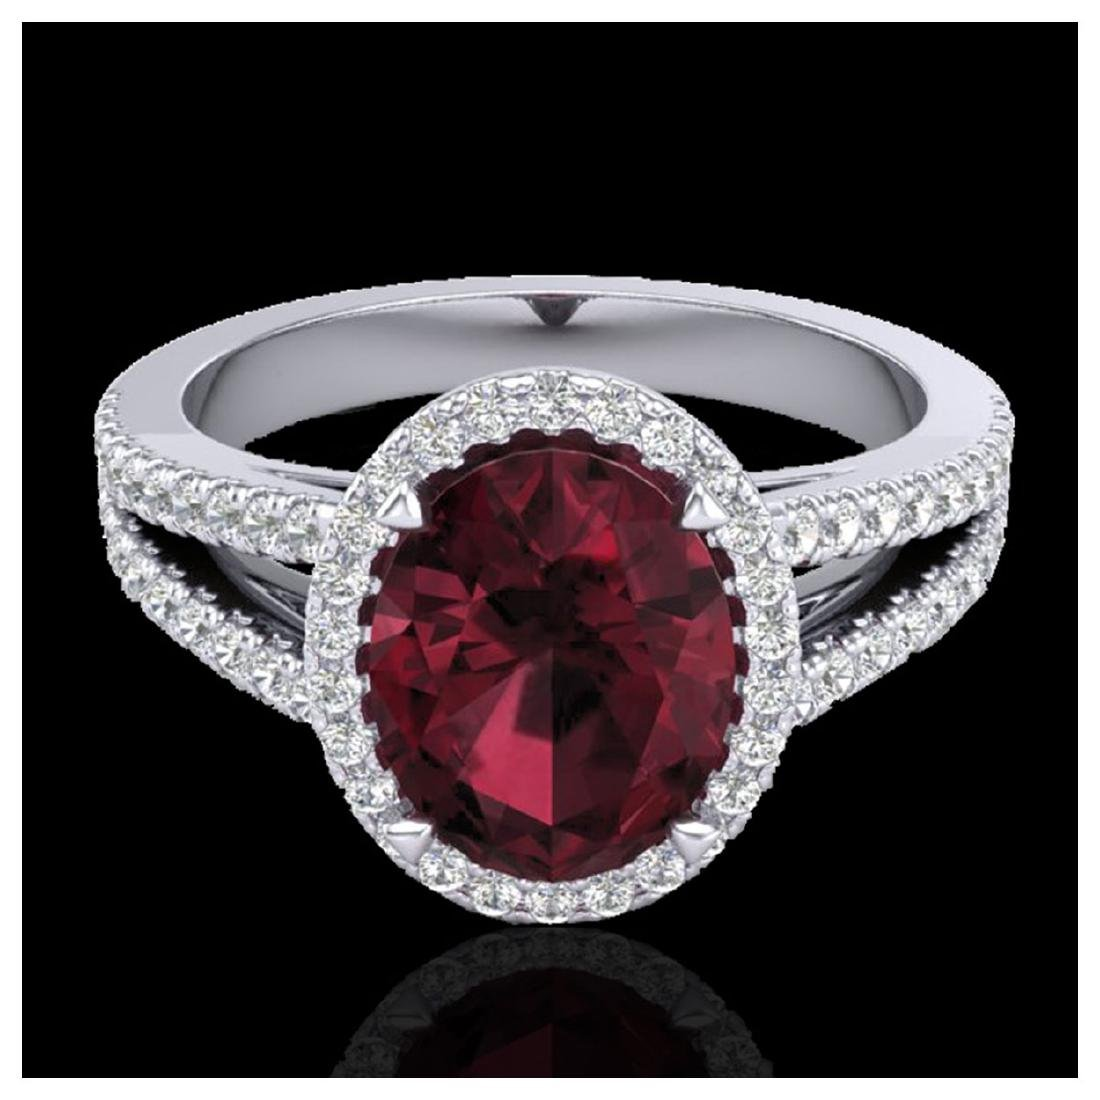 3 ctw Garnet & Micro VS/SI Diamond Halo Ring 18K White